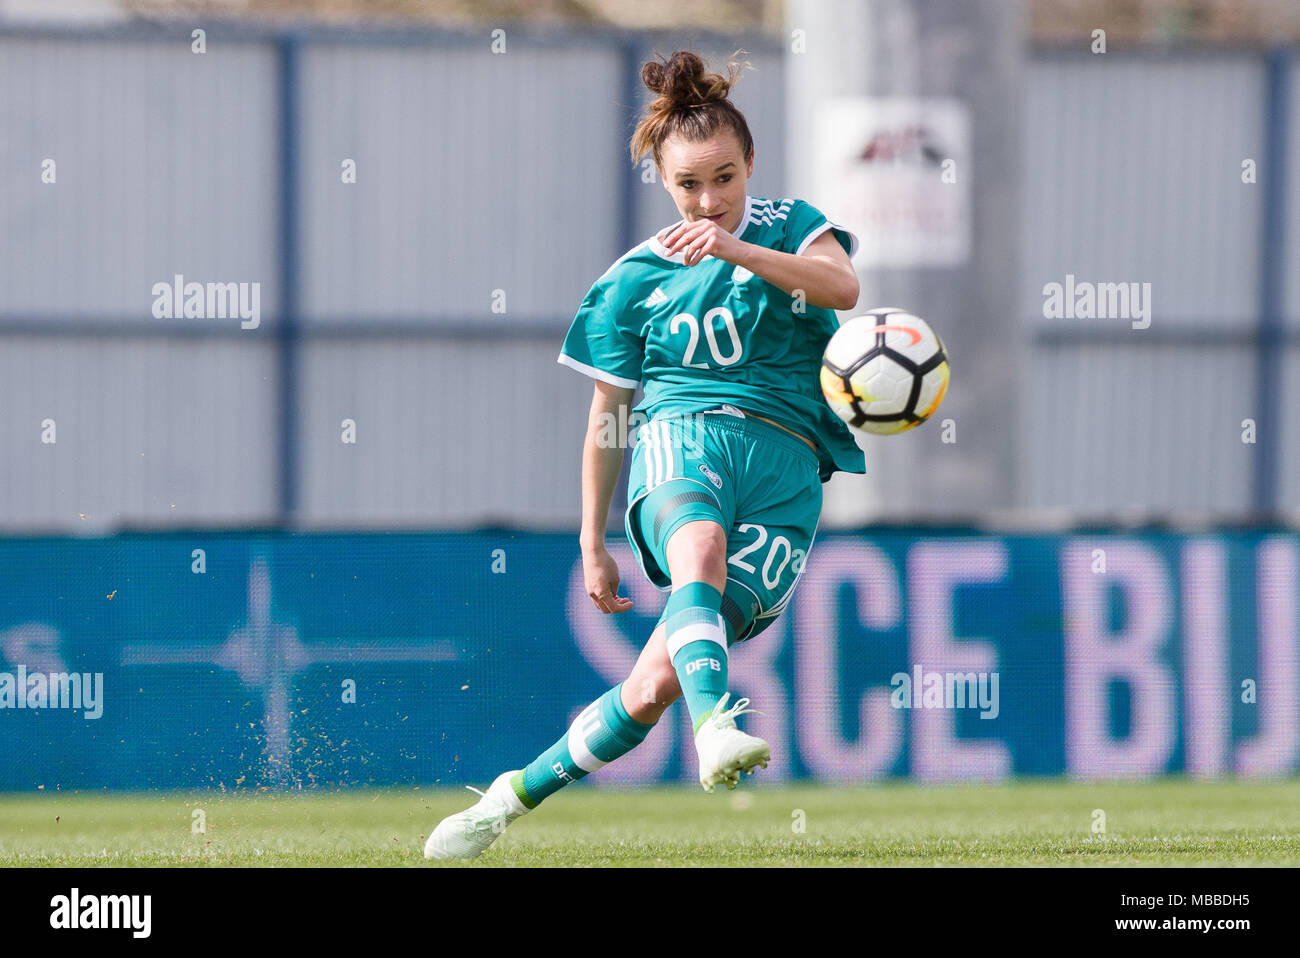 Great Europe World Cup 2018 - 10-april-2018-slovenia-domzale-soccer-womens-world-cup-qualification-europe-group-stages-slovenia-vs-germany-germanys-lina-magull-in-action-photo-sasa-pahic-szabodpa-MBBDH5  Trends_266951 .jpg